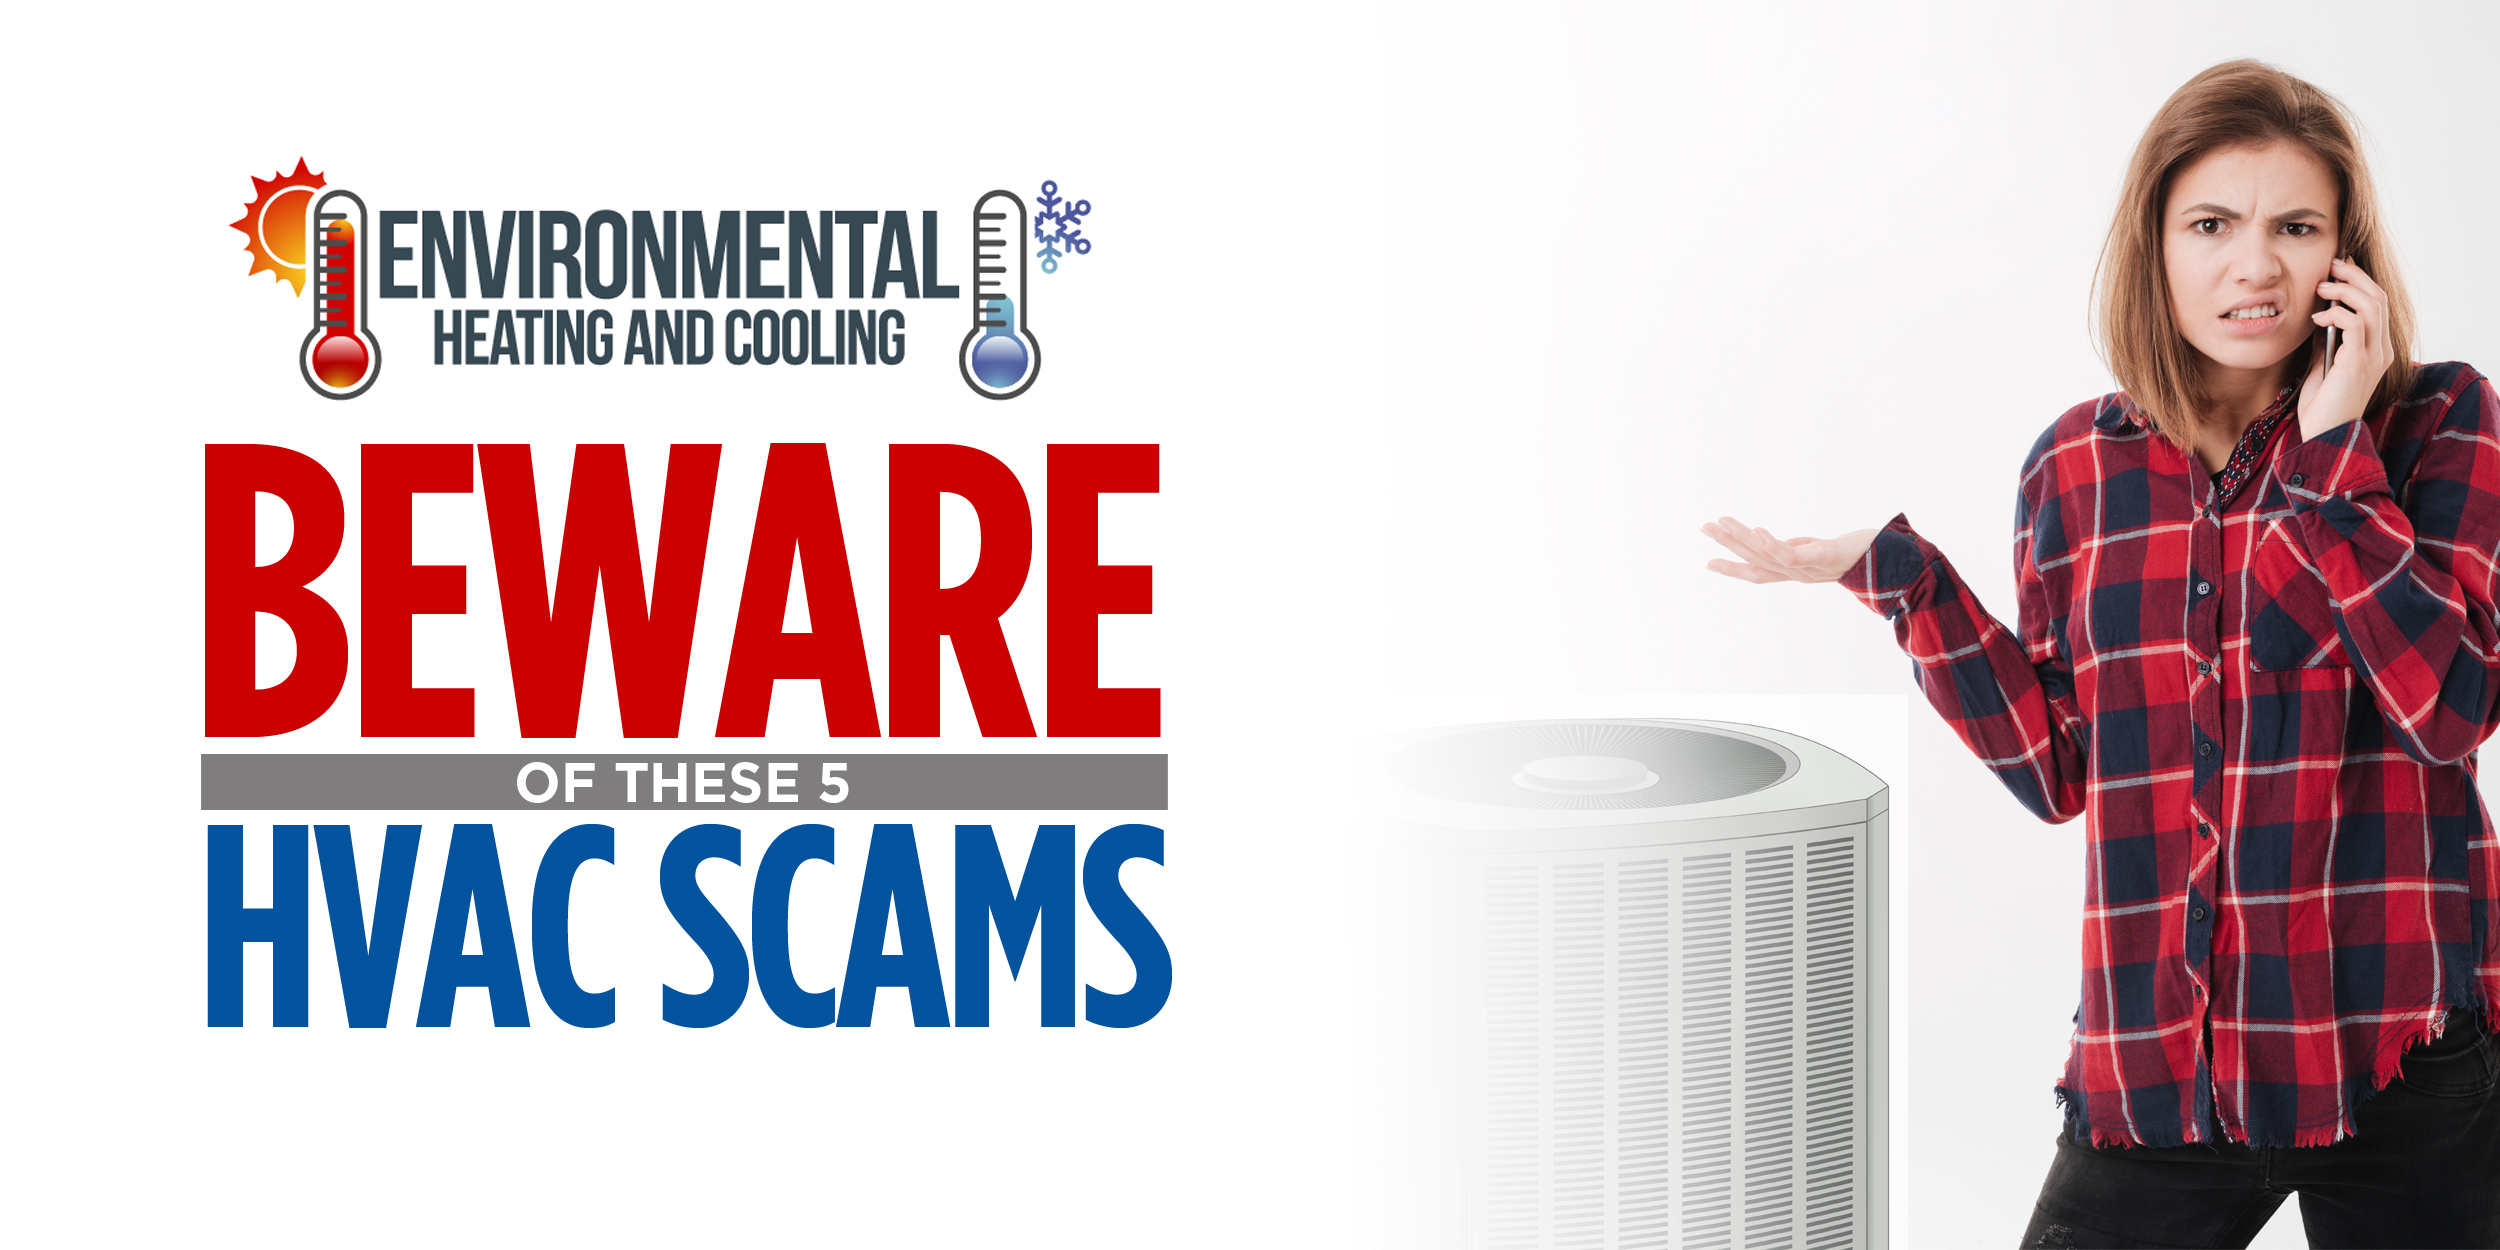 Beware of These 5 HVAC Scams